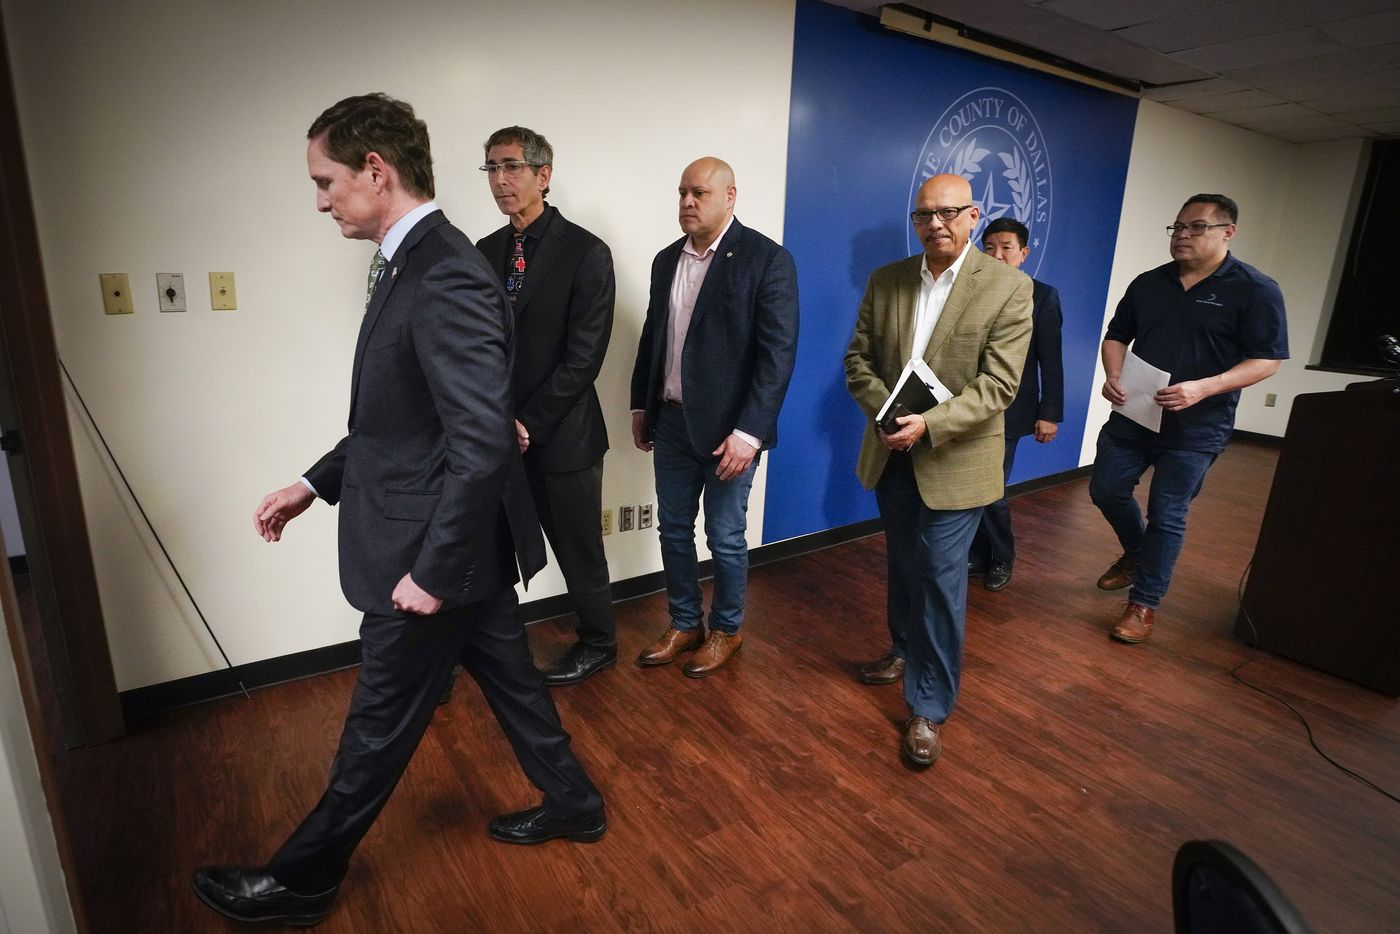 Dallas County Judge Clay Jenkins (left) departs a press conference with other city and county officials after announcing that a local state of disaster for public health emergency has been declared in the county, due to more cases of the new coronavirus, late Thursday, March 12. 2020, in Dallas. With him, from left, are Dr. Marshal Isaacs, Dallas Mayor Pro Tem Adam Medrano, Rocky Vaz, City of Dallas Director of Emergency Management, Dr. Philip Huang, Director of Dallas County Health and Human Services, and Dallas city council member Omar Narvaez.